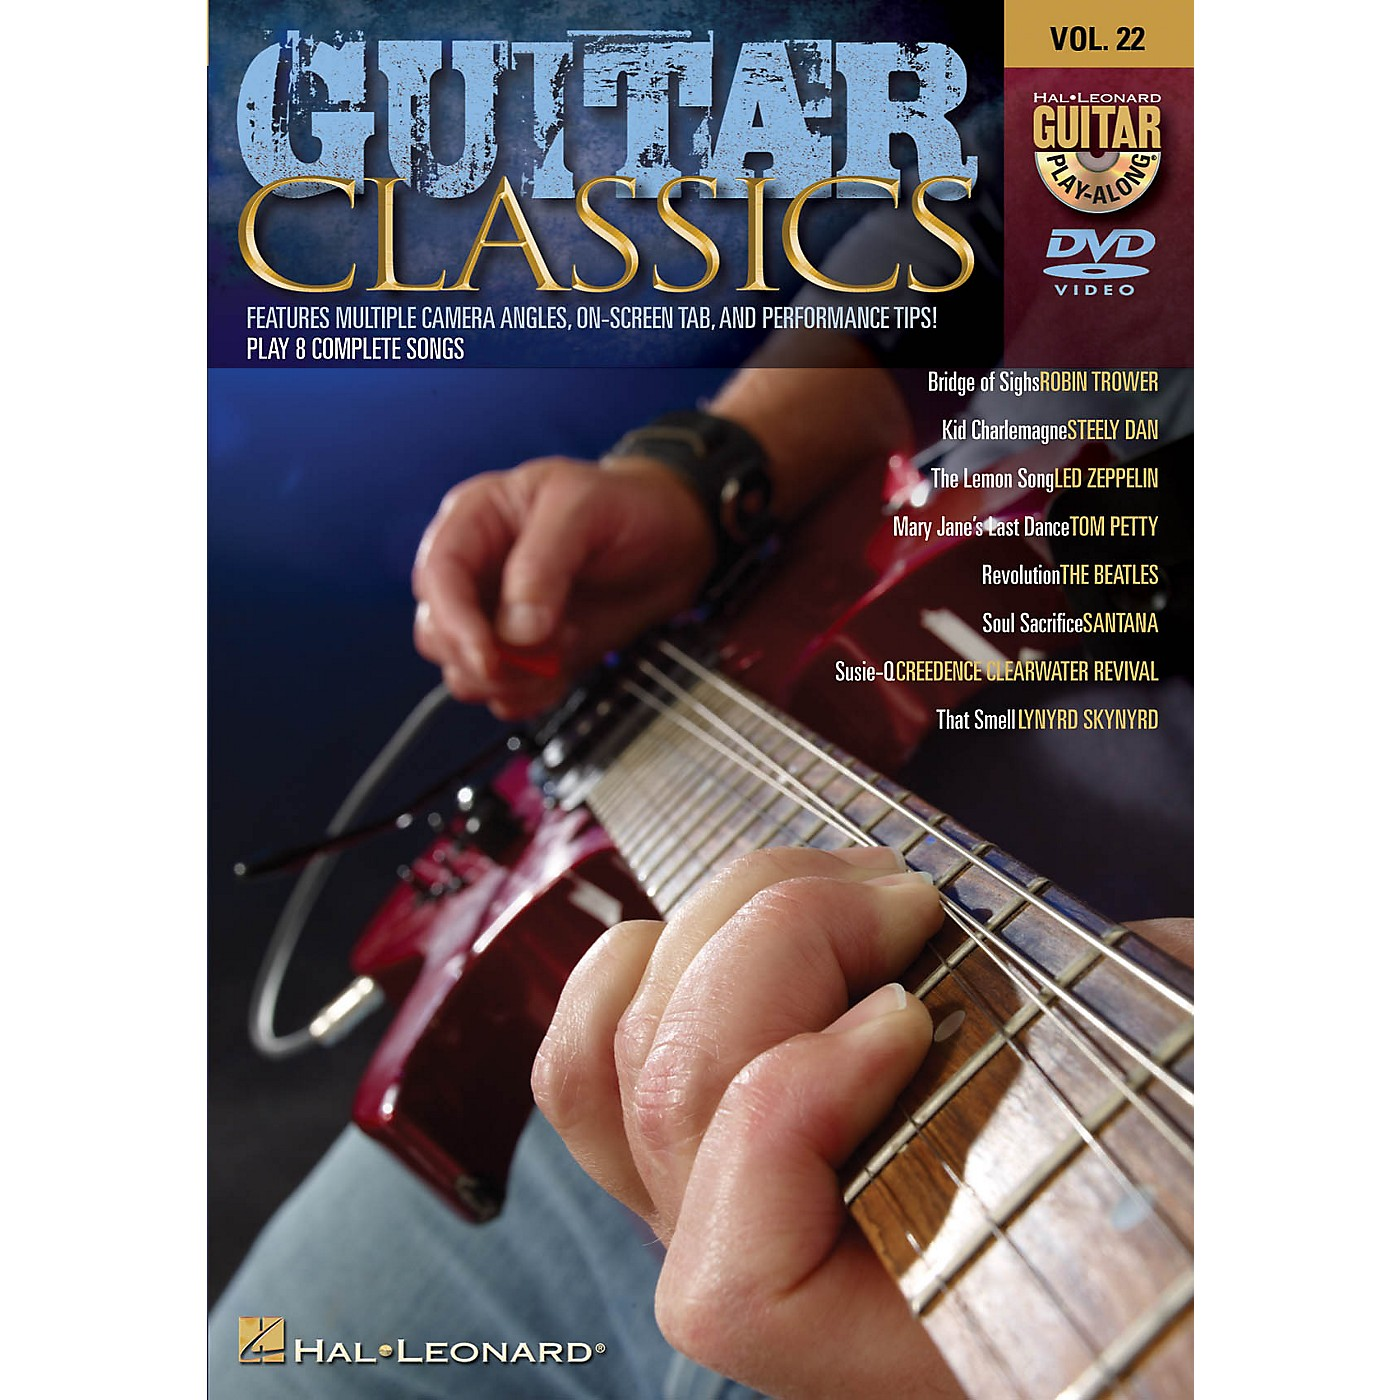 Hal Leonard Guitar Classics (Guitar Play-Along DVD Volume 22) Guitar Play-Along DVD Series DVD Performed by Various thumbnail